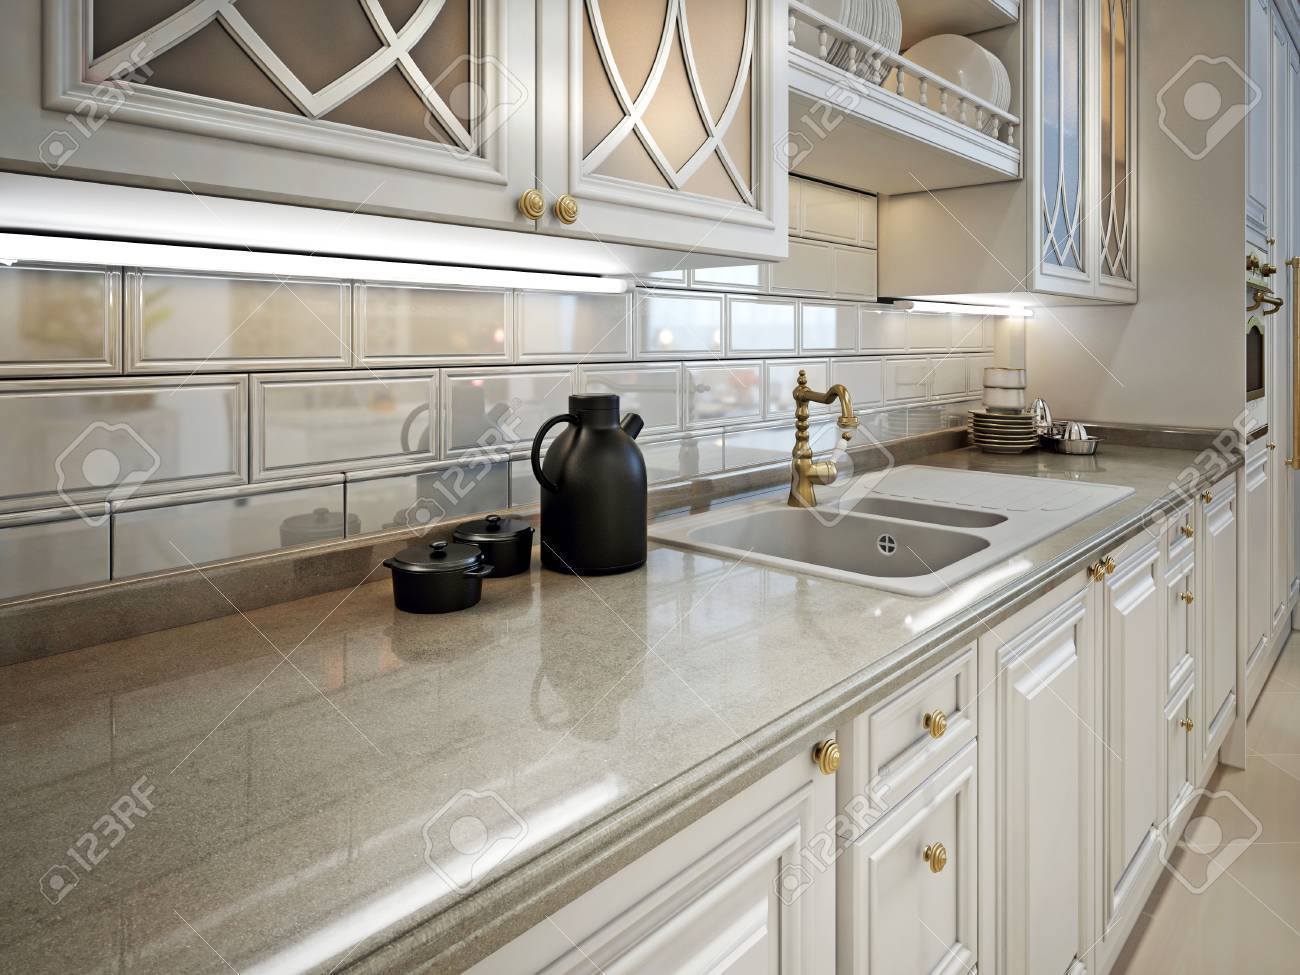 Kitchen Furniture And Marble Work Surface In A Classic Style Stock Photo Picture And Royalty Free Image Image 47512657